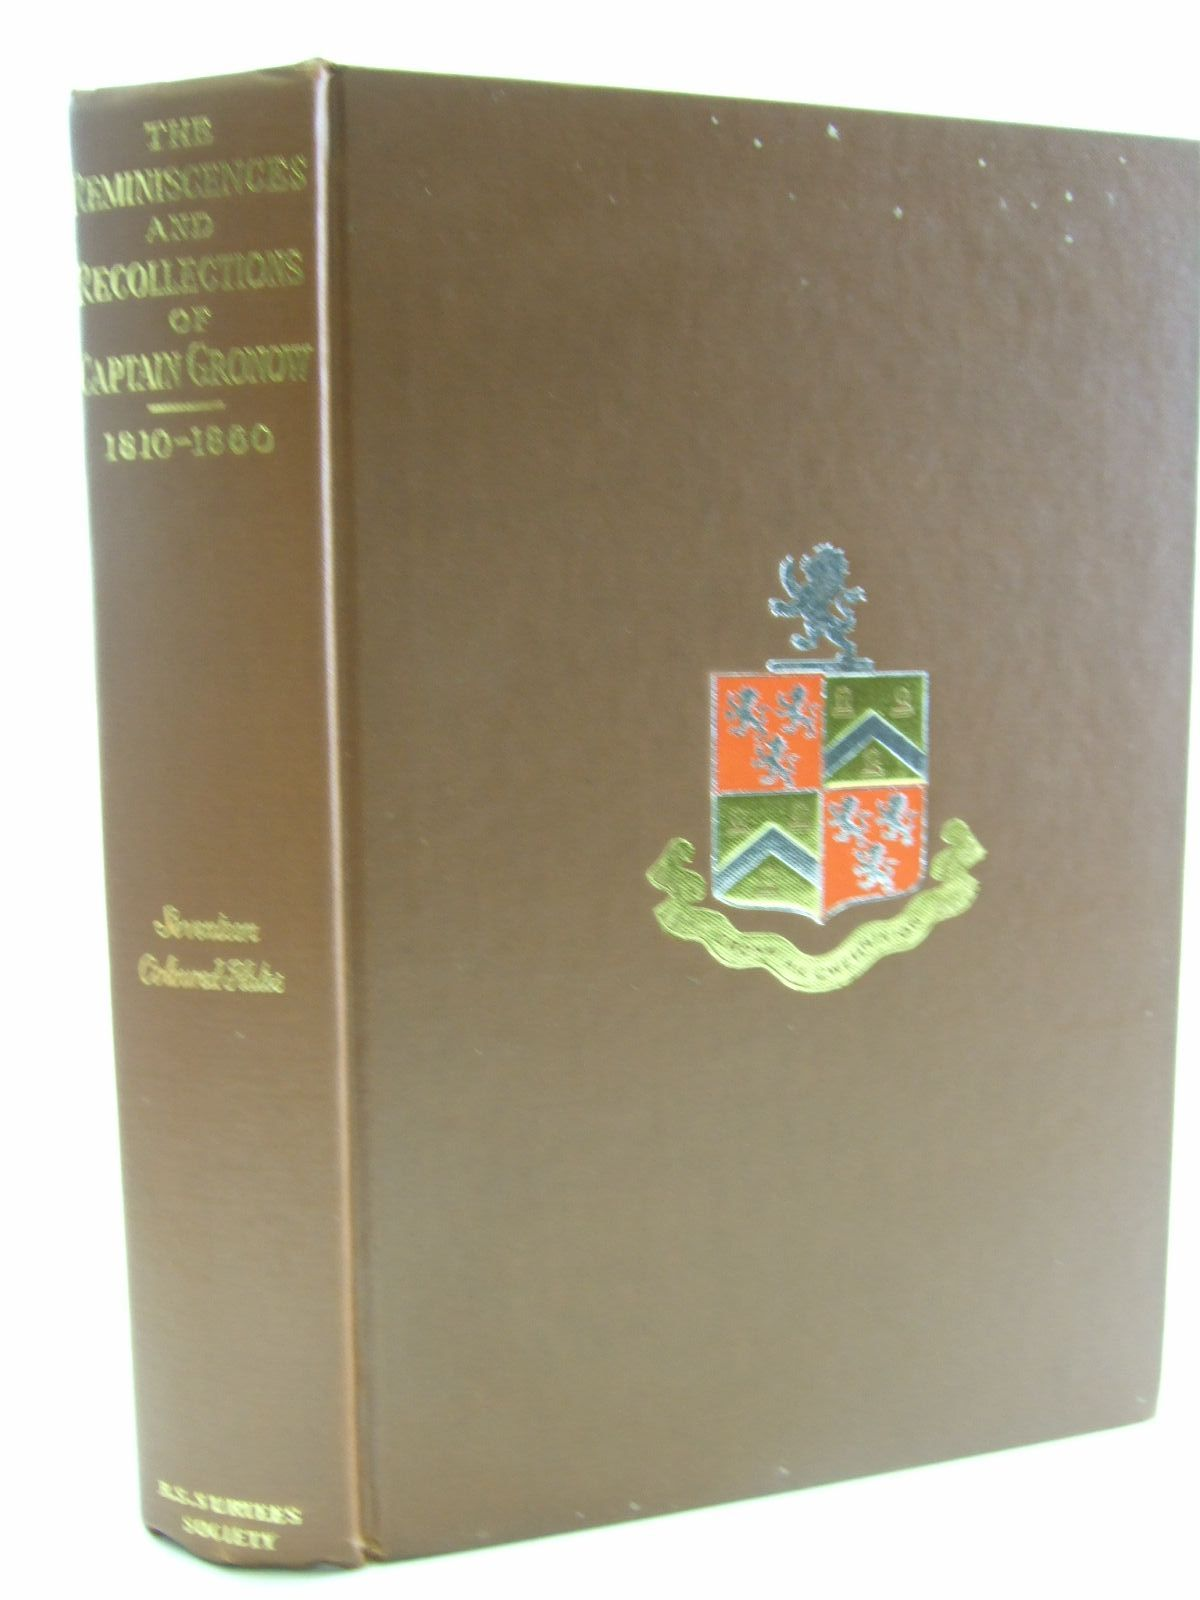 Photo of THE REMINISCENCES AND RECOLLECTIONS OF CAPTAIN GRONOW VOLUME ONE written by Gronow, Captain illustrated by Grego, Joseph published by The R.S. Surtees Society (STOCK CODE: 1707509)  for sale by Stella & Rose's Books